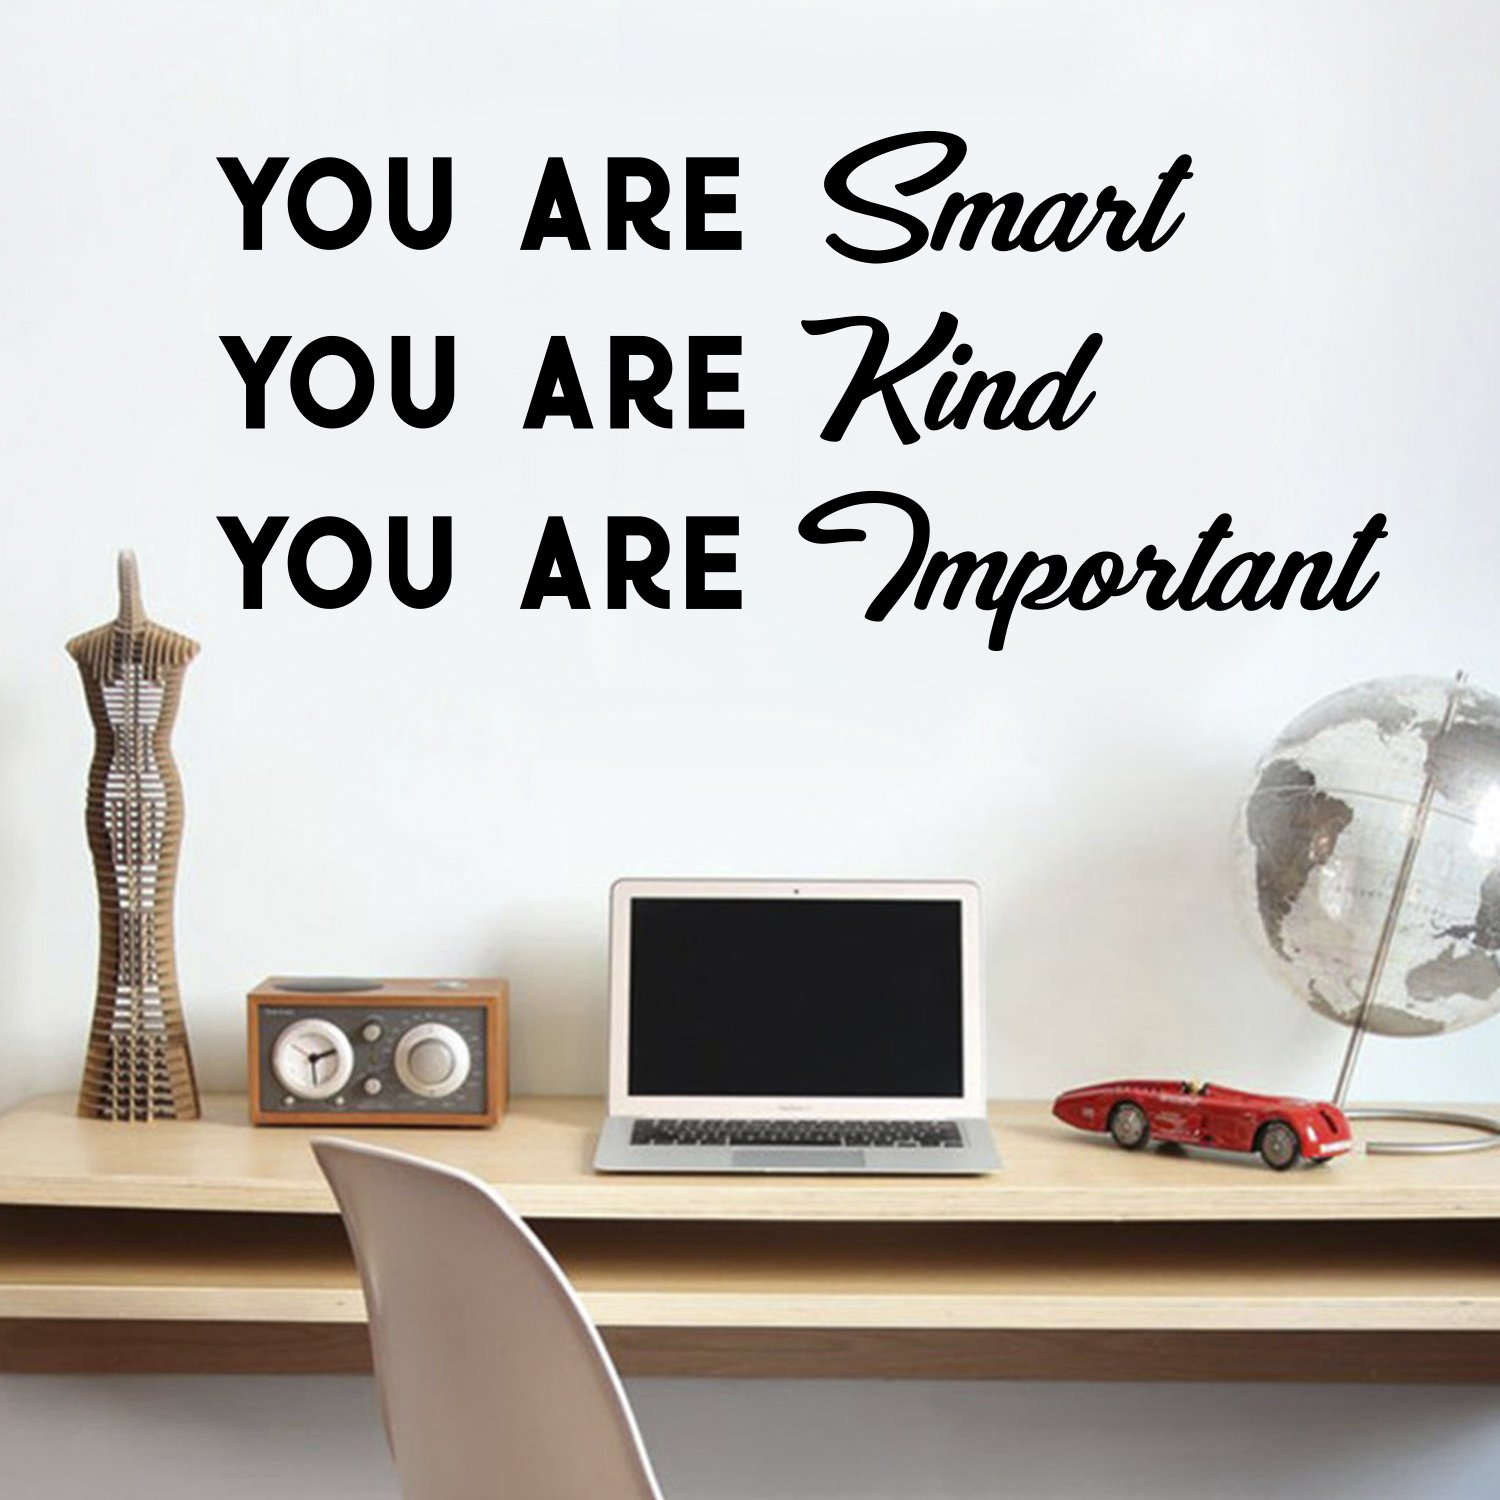 Vinyl Wall Art Decal - You are Smart You are Kind You are Important - 16'' x 36'' - Motivational Quote Words Teen Boy Girl Bedroom Living Room Home Office Decor - Trendy Modern Wall Sticker Decals